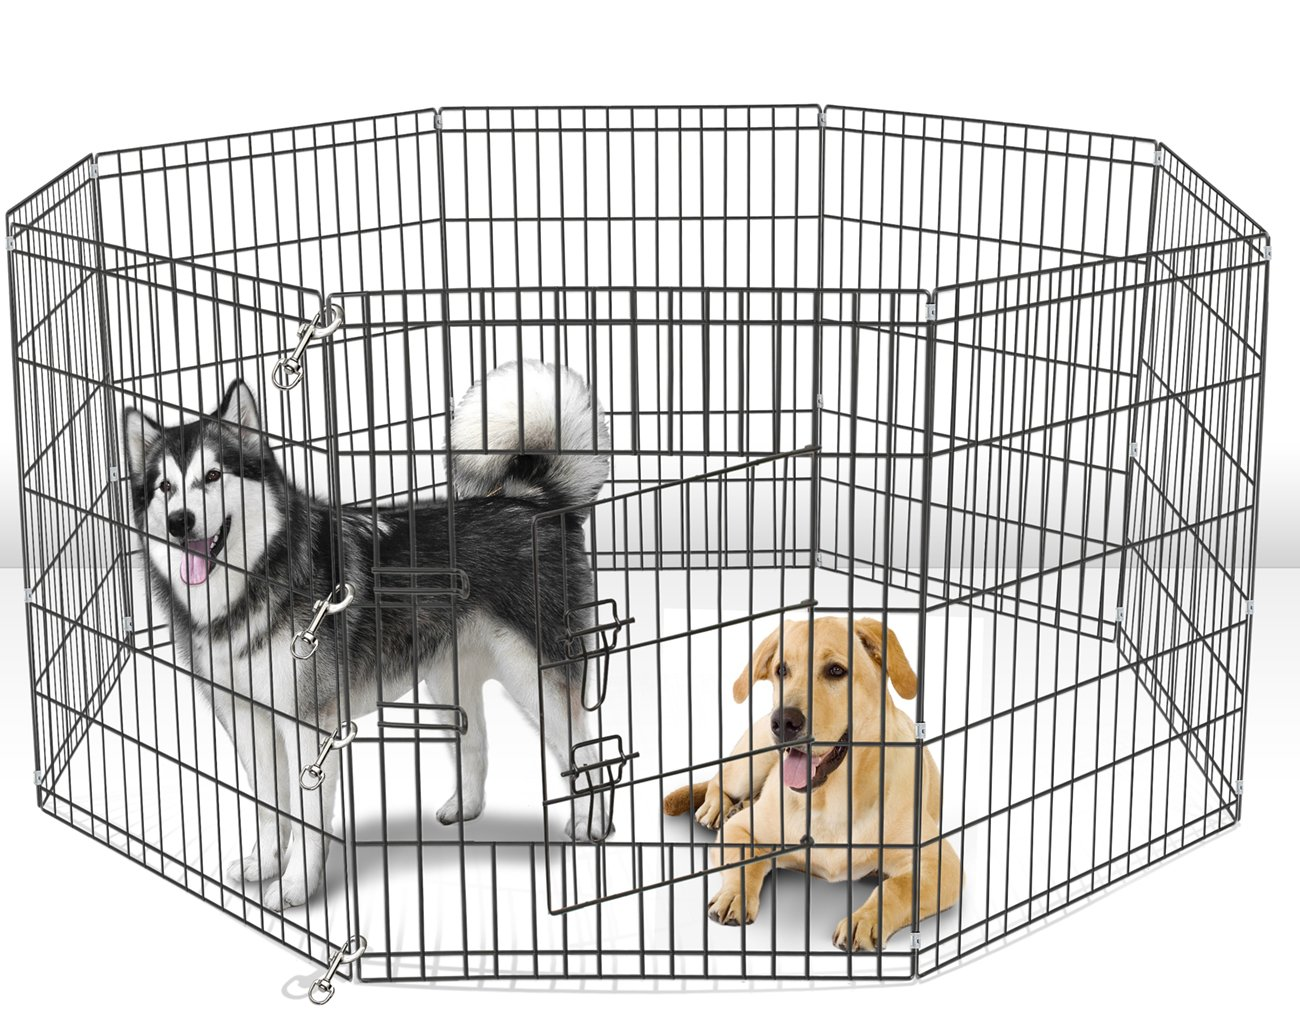 Paws & Pals Dog Exercise Pen Pet Playpens for Dogs - Puppy Playpen Outdoor Back or Front Yard Fence Cage Fencing Doggie Rabbit Cats Playpens Outside Fences with Door - Metal Wire 8-Panel Foldable 3